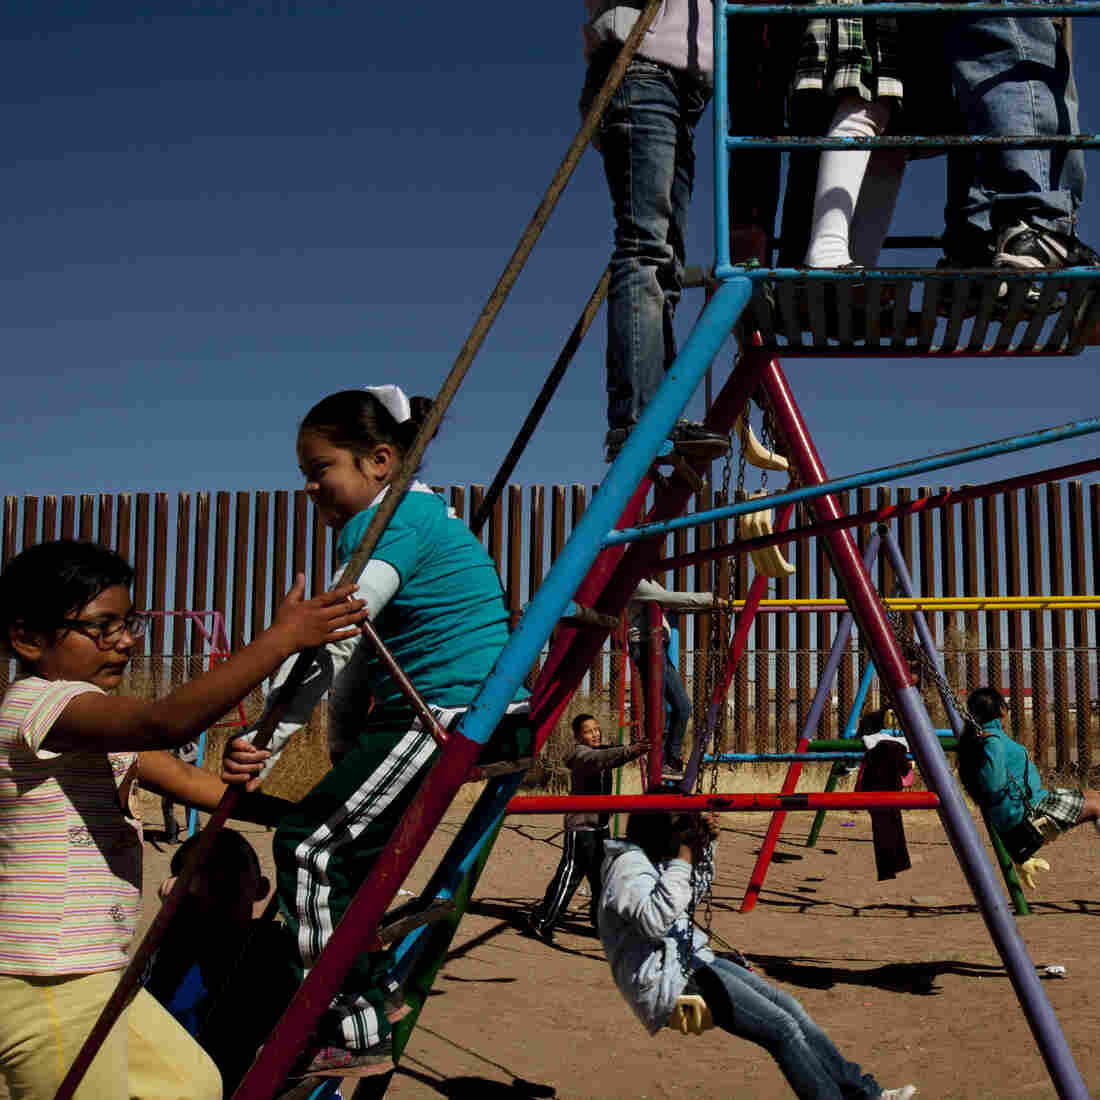 Borderland: Dispatches From The U.S.-Mexico Boundary